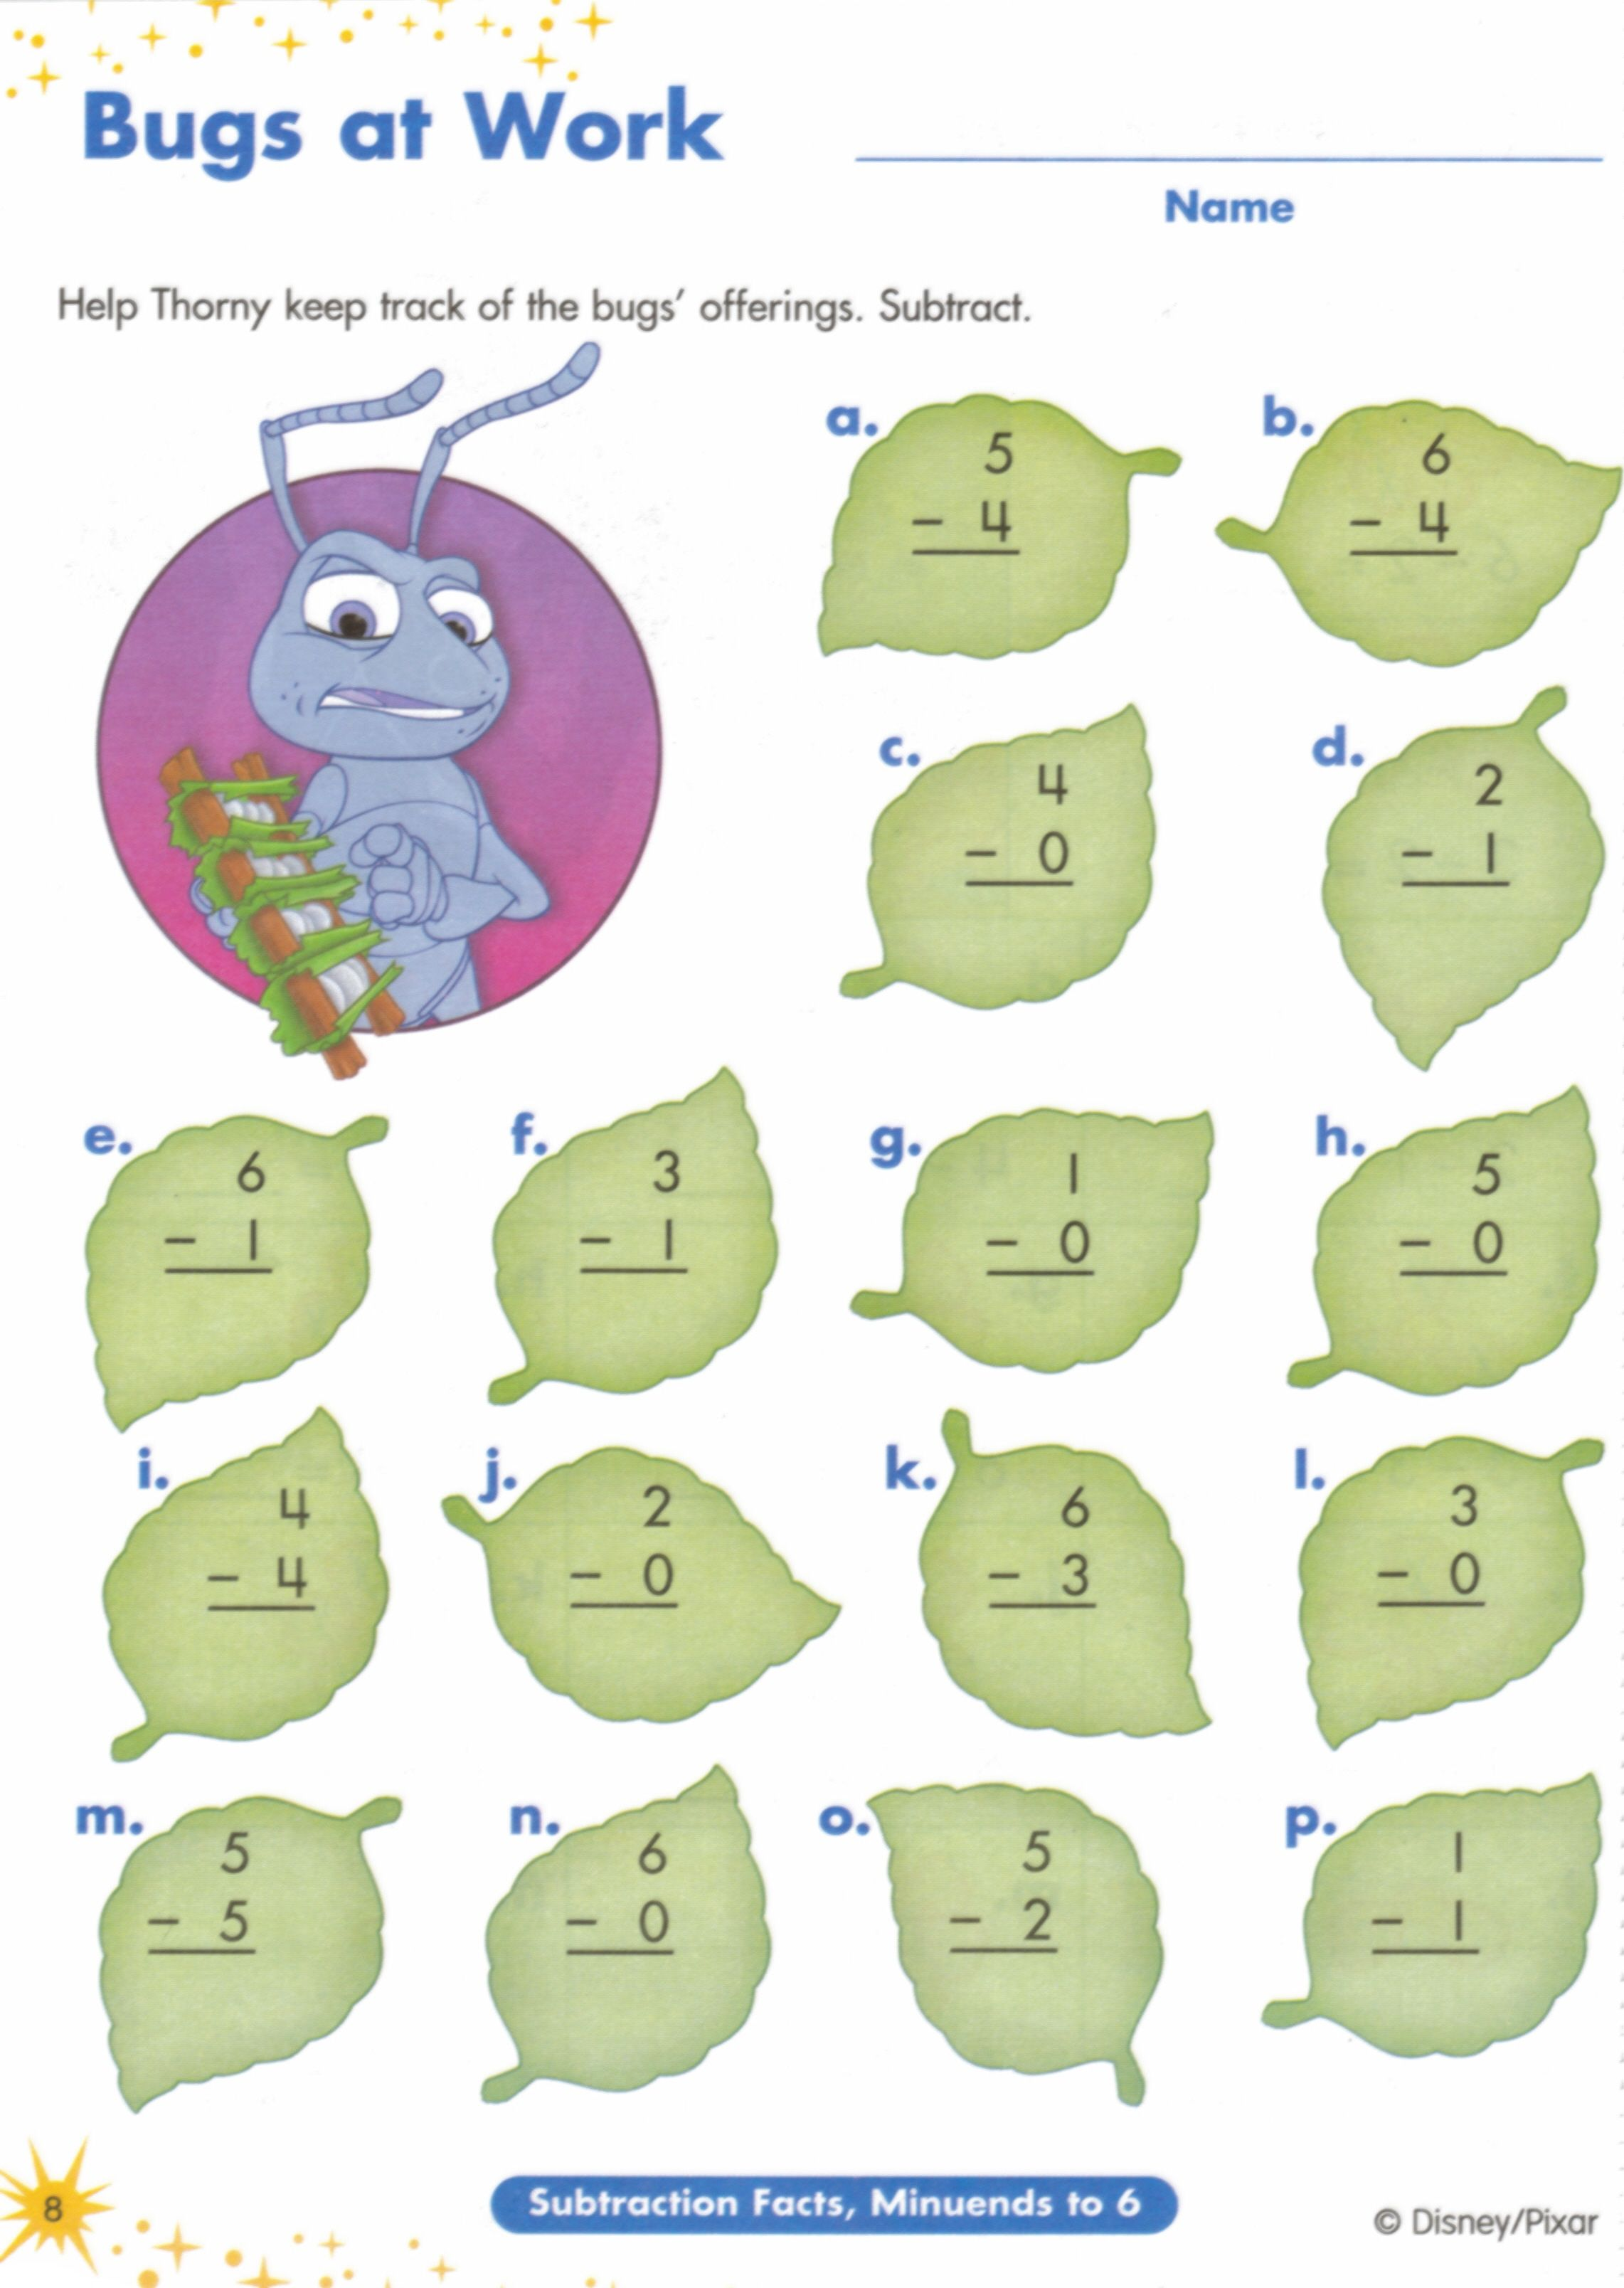 Weirdmailus  Outstanding  Images About Worksheets On Pinterest  Fun Facts For Kids  With Excellent  Images About Worksheets On Pinterest  Fun Facts For Kids Earth Day Worksheets And Jungles With Charming Numerical And Algebraic Expressions Worksheet Also Work And Power Worksheet  Answers In Addition Turkey Multiplication Worksheet And Perpendicular And Parallel Lines Worksheet As Well As Polite Expressions Worksheets For Grade  Additionally Subject And Object Of A Sentence Worksheets From Pinterestcom With Weirdmailus  Excellent  Images About Worksheets On Pinterest  Fun Facts For Kids  With Charming  Images About Worksheets On Pinterest  Fun Facts For Kids Earth Day Worksheets And Jungles And Outstanding Numerical And Algebraic Expressions Worksheet Also Work And Power Worksheet  Answers In Addition Turkey Multiplication Worksheet From Pinterestcom